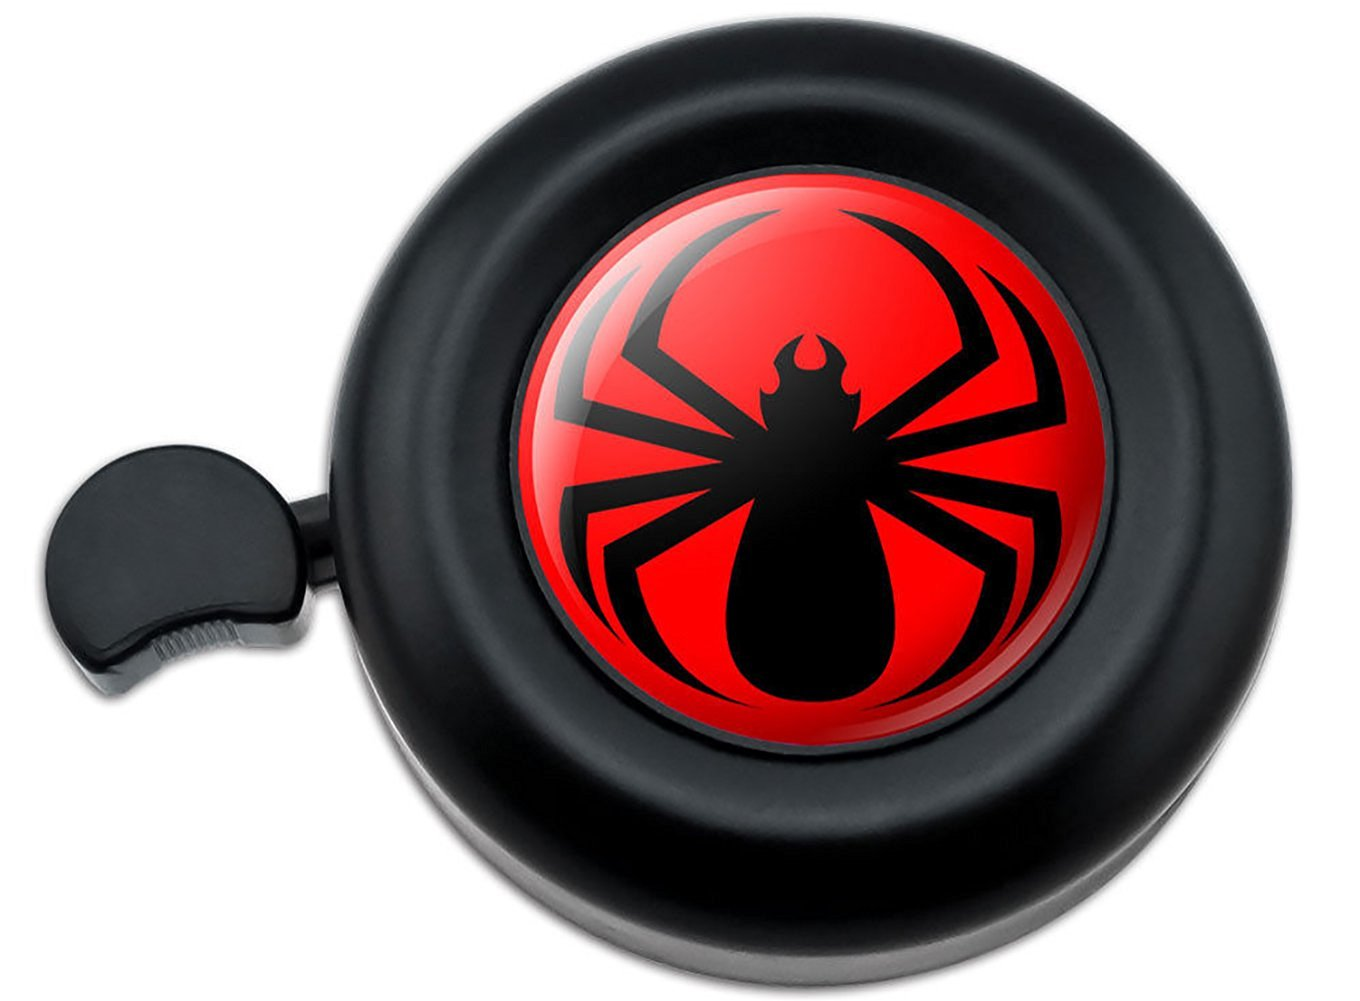 Cool and Custom {Fully Adjustable to Fit Most Bikes} Bicycle Handlebar Bell Made of Hard Metal with Edgy Dark Sharp Symmetrical Cool Intimidating Arachnid Spider Design {Black & Red Colors}